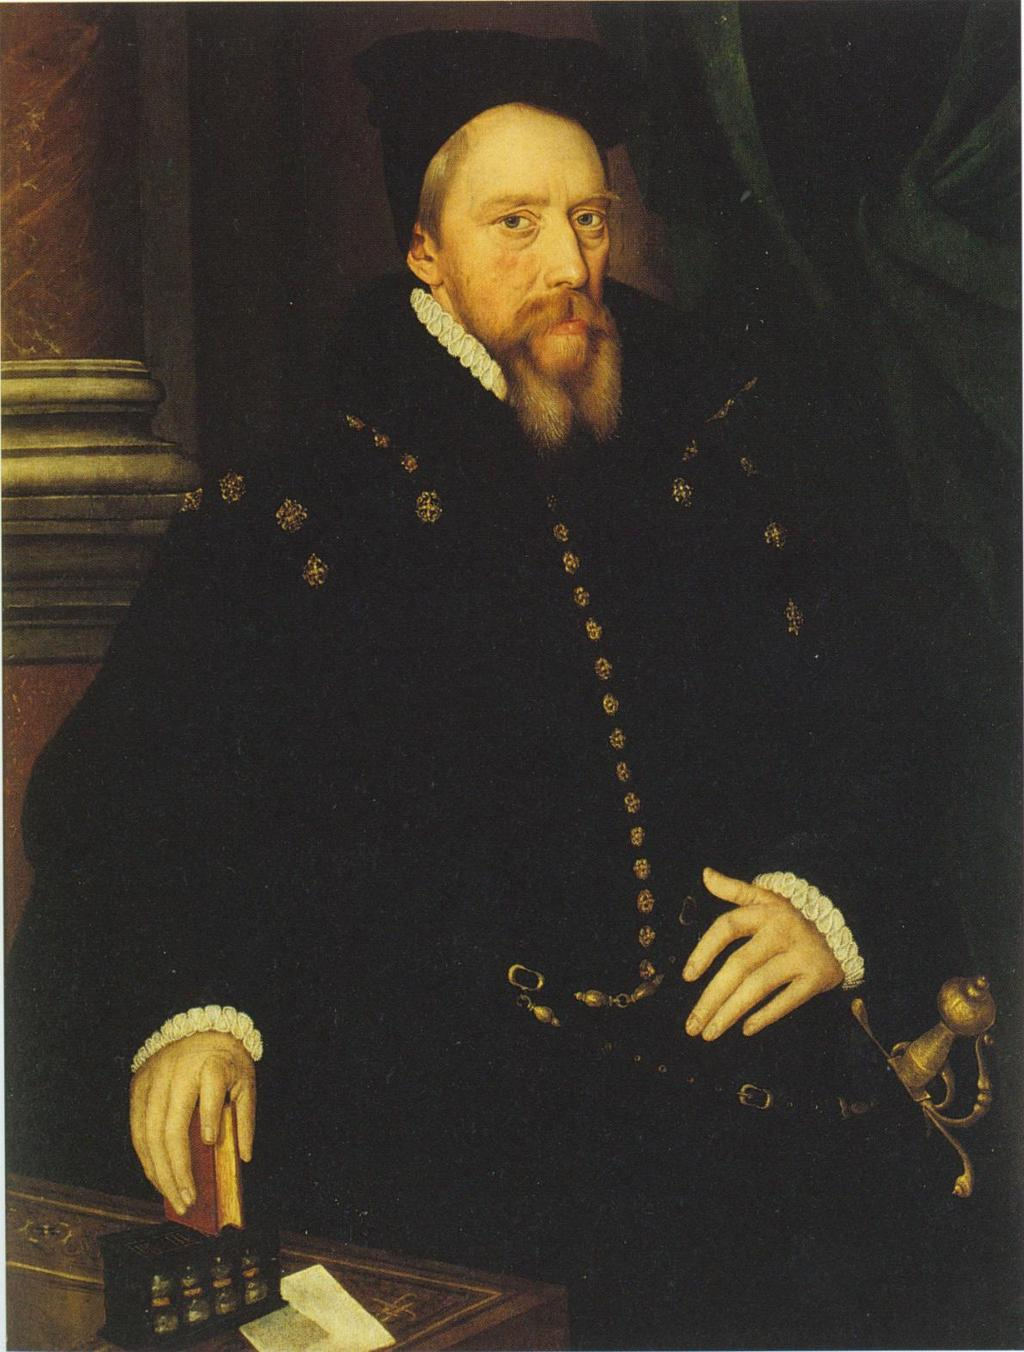 ii Image 1: Attr. Hans Eworth, William Cecil, Lord Burghley, c.